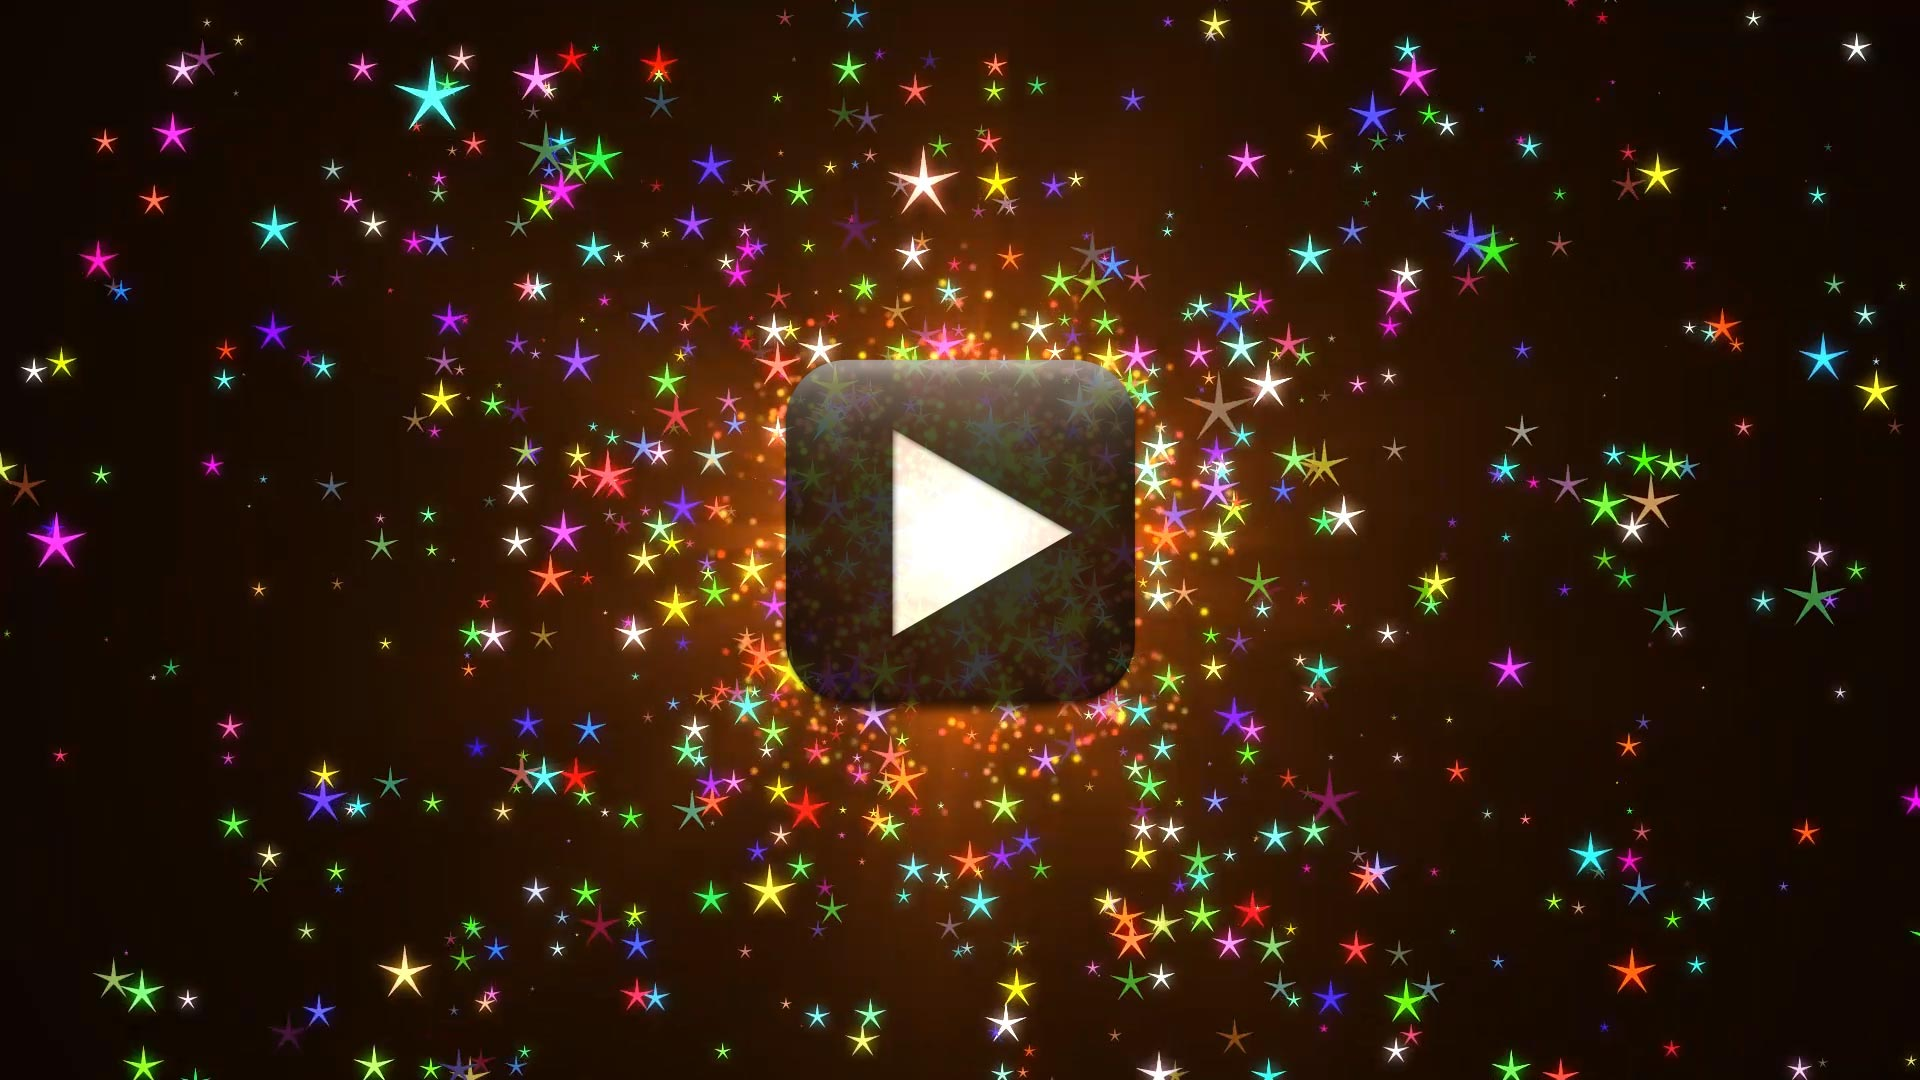 HD Moving Stars Background Video Loops